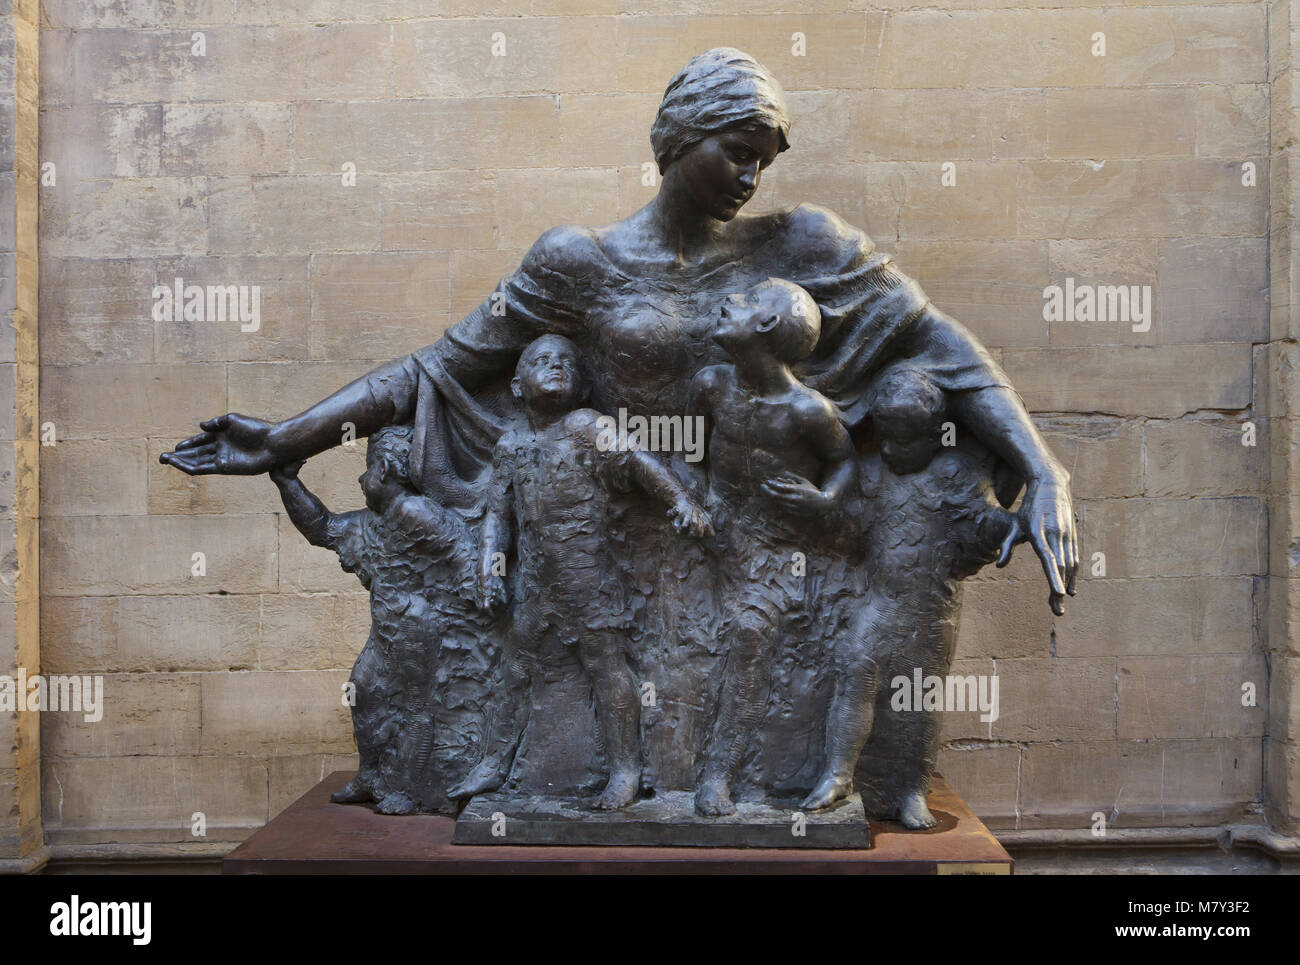 Bronze statue The Mother of Armenia (2014) by Armenian sculptor Vigen Avetis in Florence, Tuscany, Italy. The statue - Stock Image